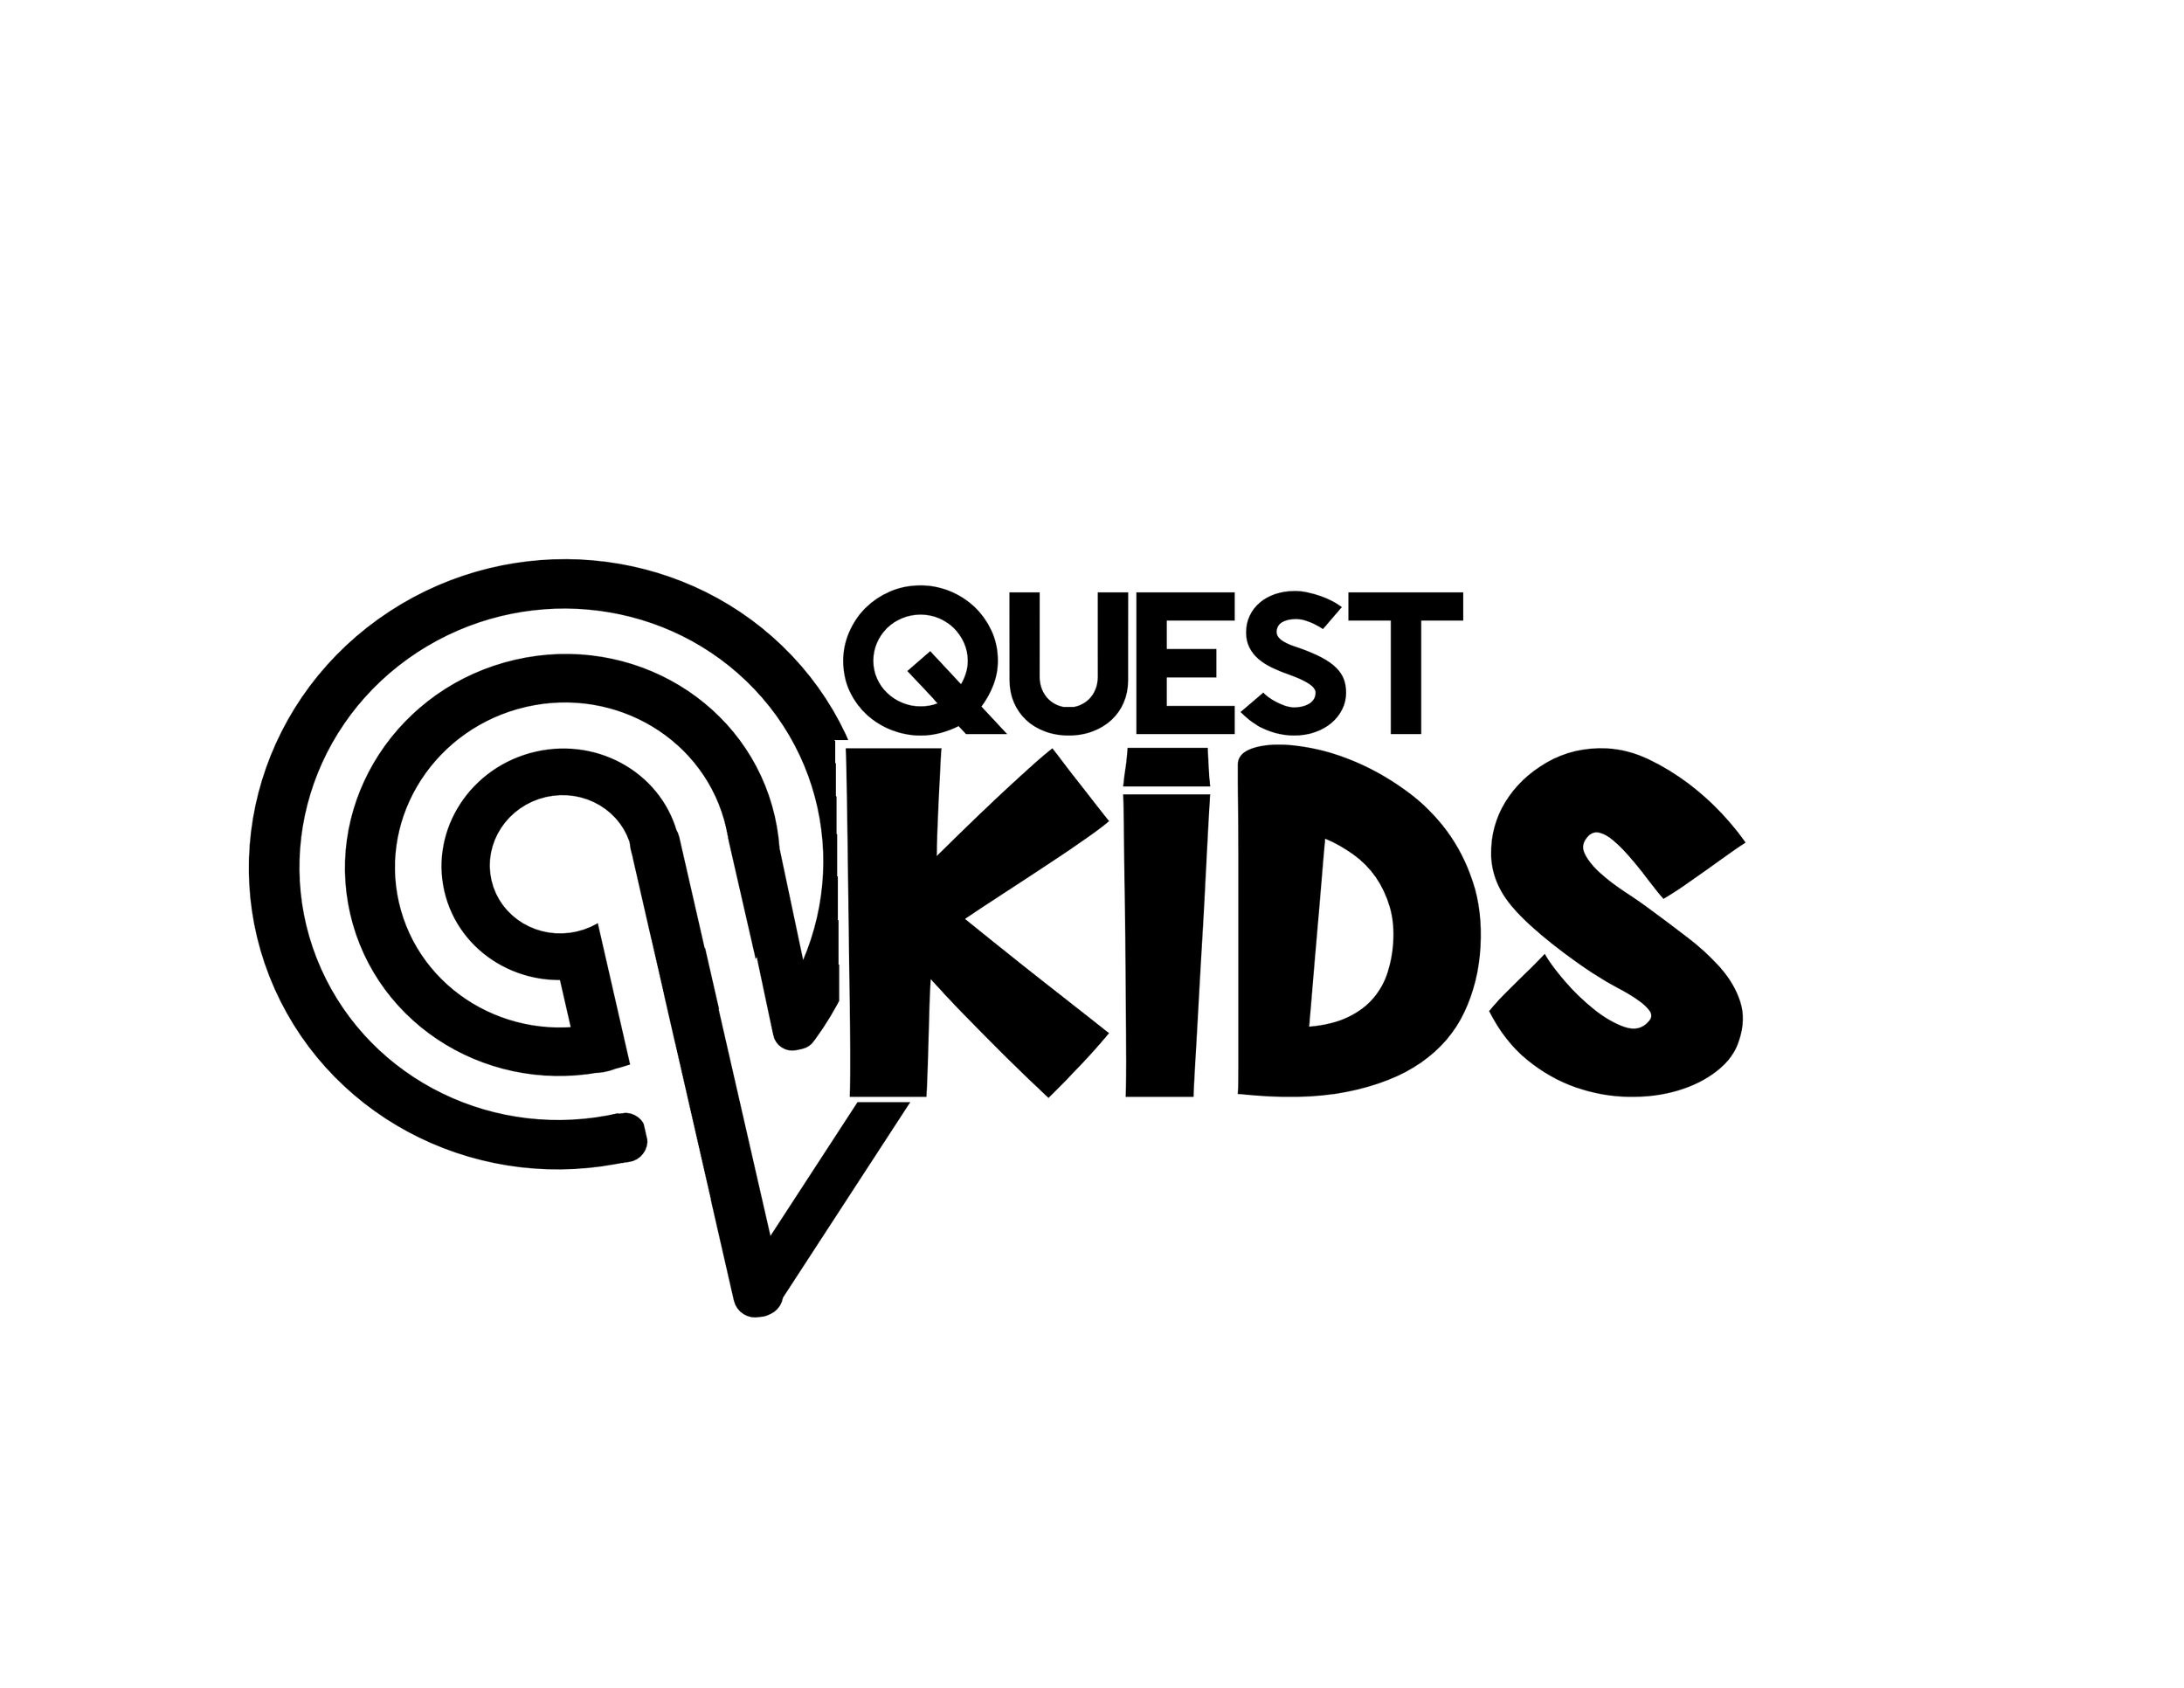 - QUEST KIDS (6wks -5th Grade) is a ministry uniquely designed with your child in mind! We create a safe, exciting atmosphere for kids ages 6 weeks through 5th grade during both Sunday and Wednesday service times.Our team is passionate about teaching kids the Bible in creative and relevant ways that they can understand. Once your child has been checked-in and dropped at their age appropriate location, you can enjoy a great service experience knowing your child is having fun and learning about God!